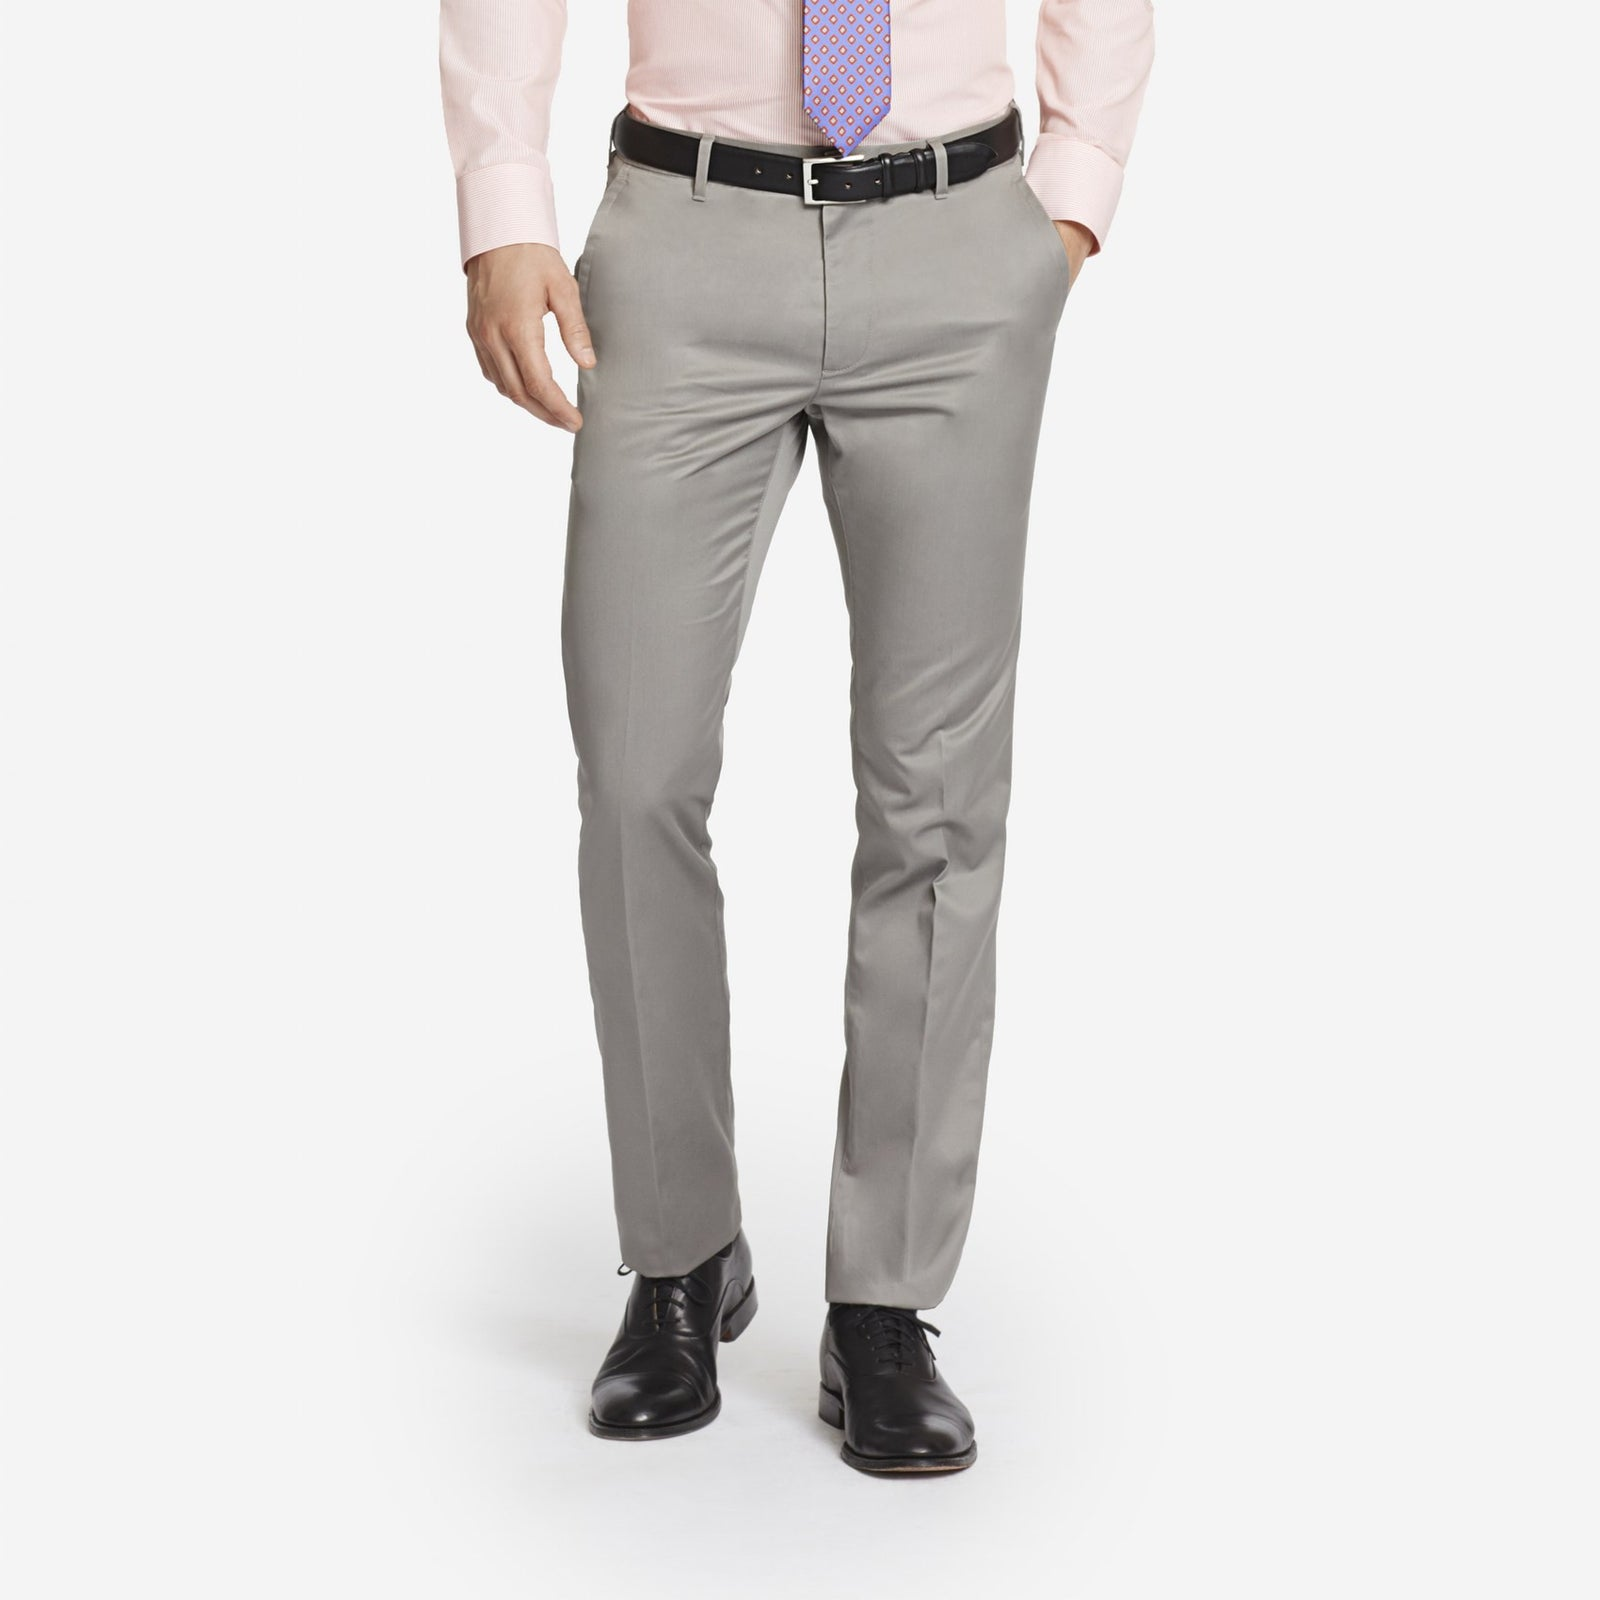 Light Grey Bespoke Tailored Cotton Trousers